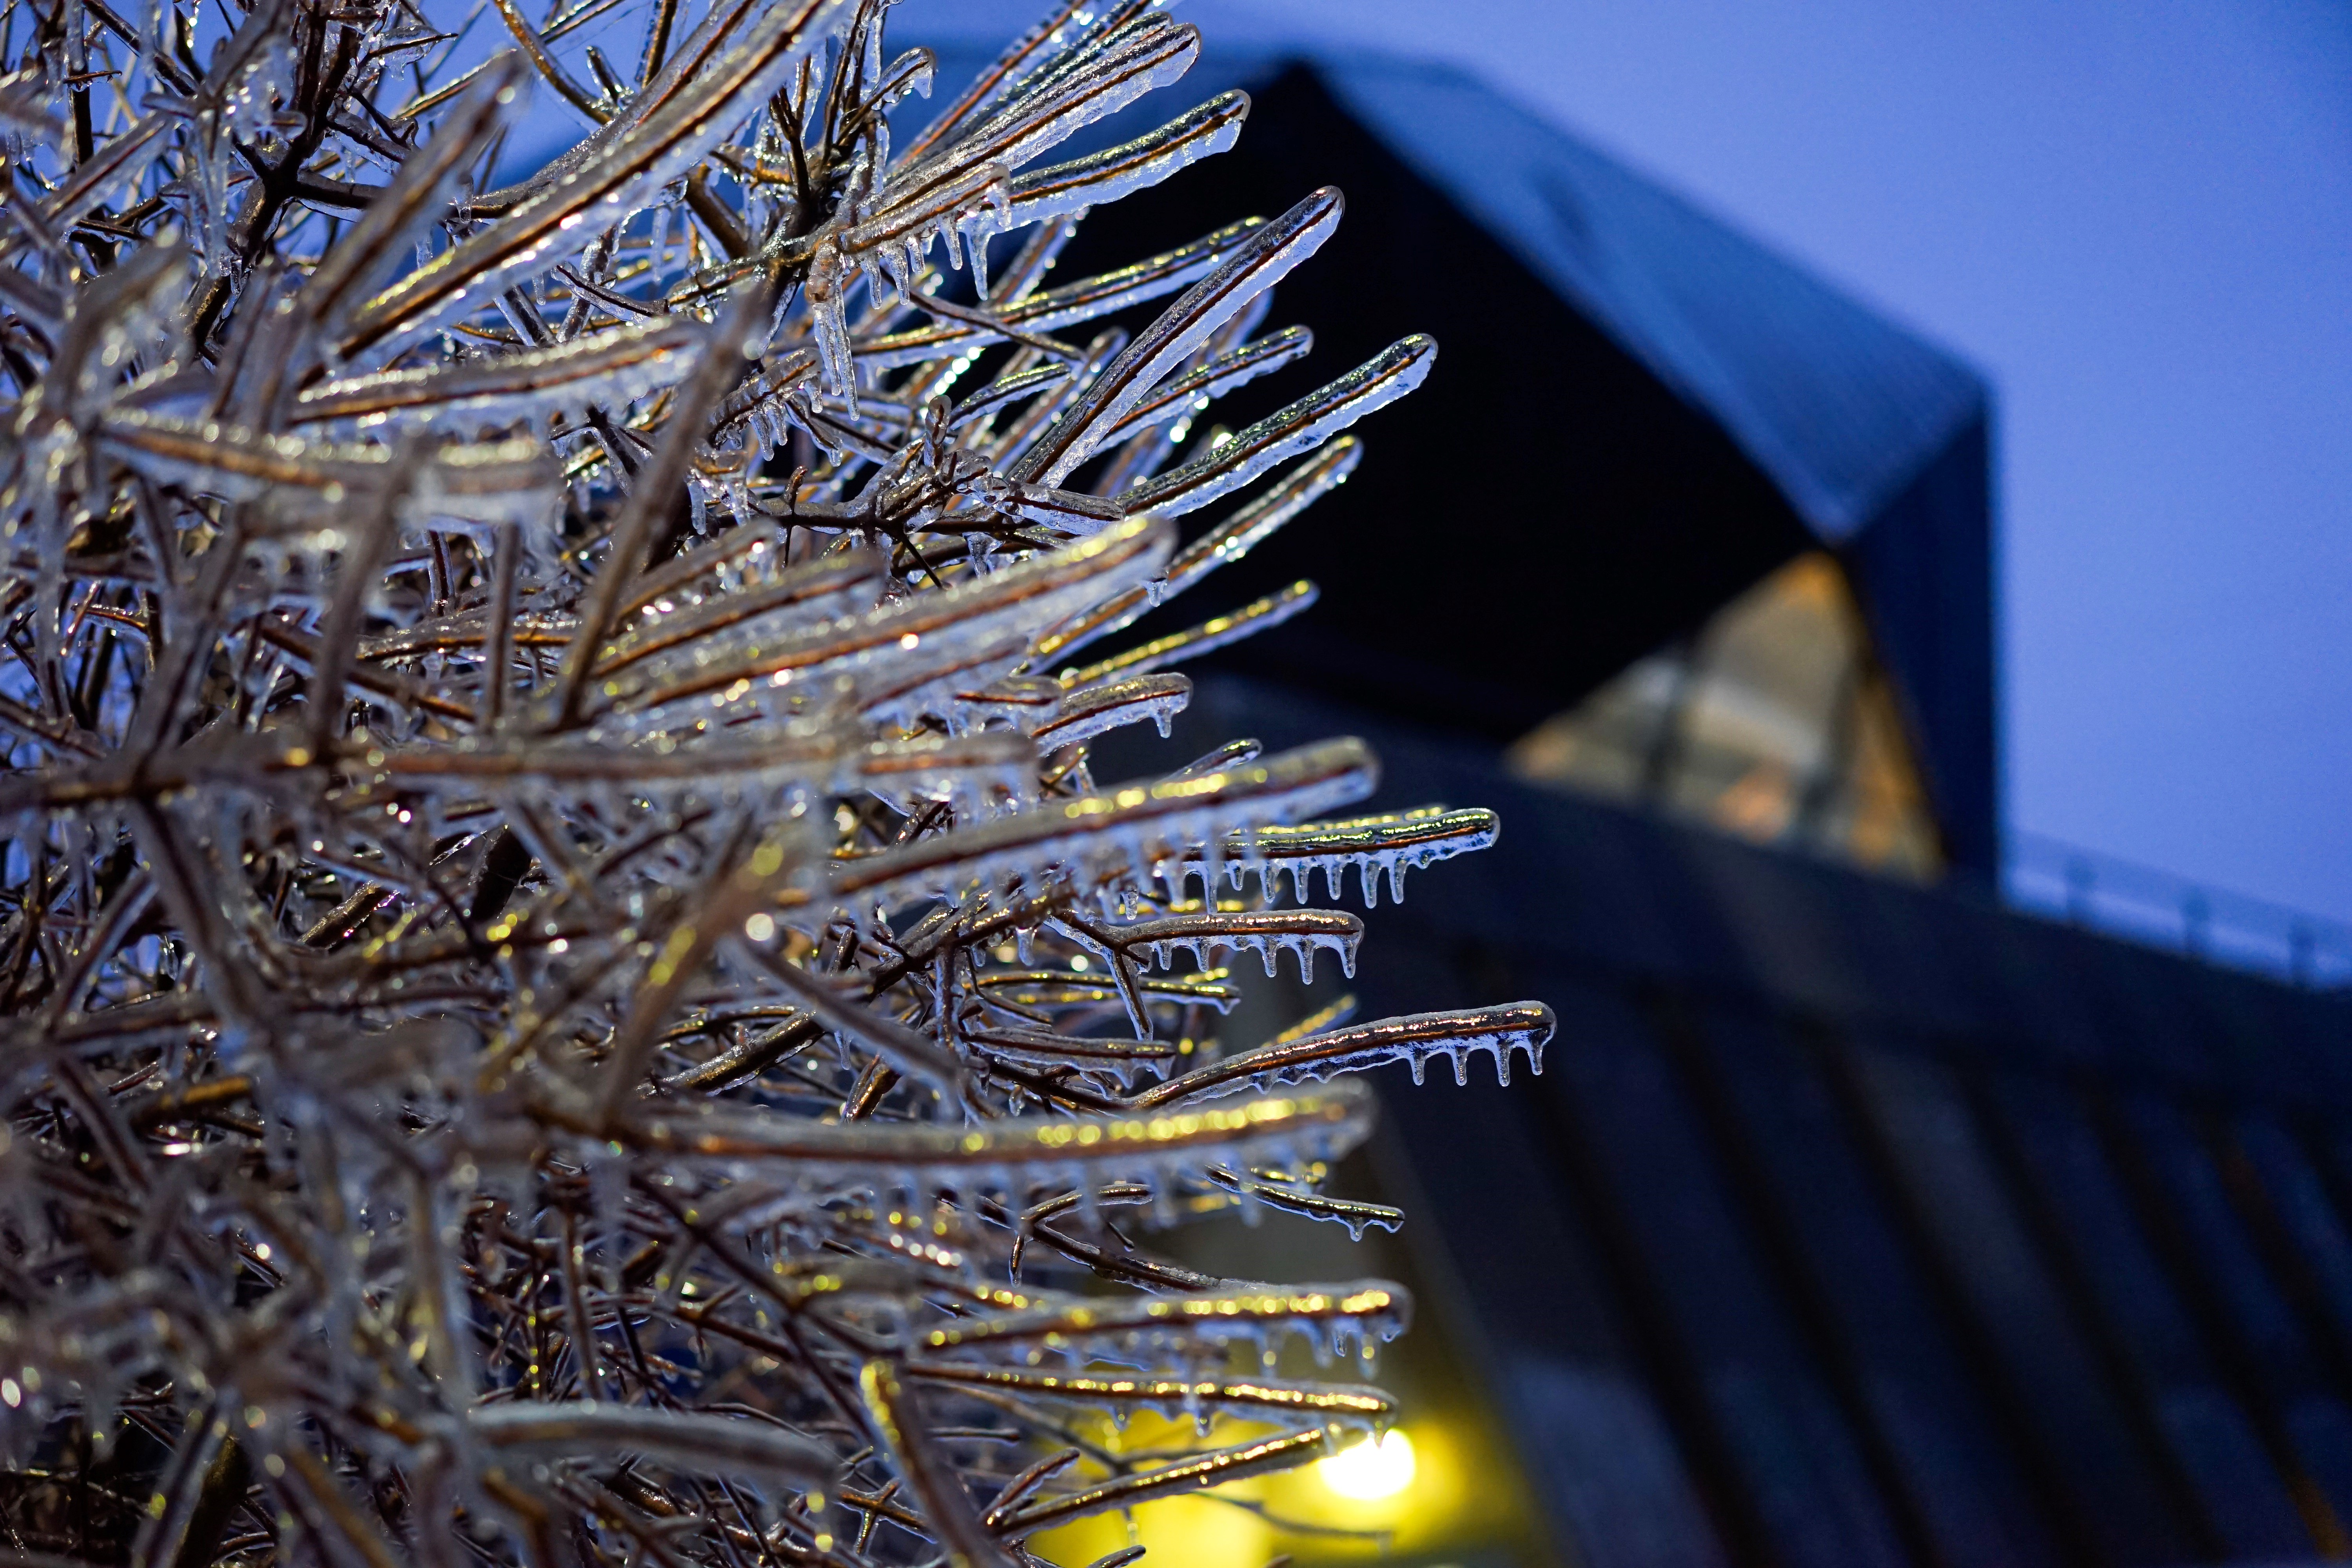 (3/3) The SiDet building provides a lovely background for an early-morning icy bush. nature, building, SiDet, ice, winter, plant, tree Photo: Leticia Shaddix